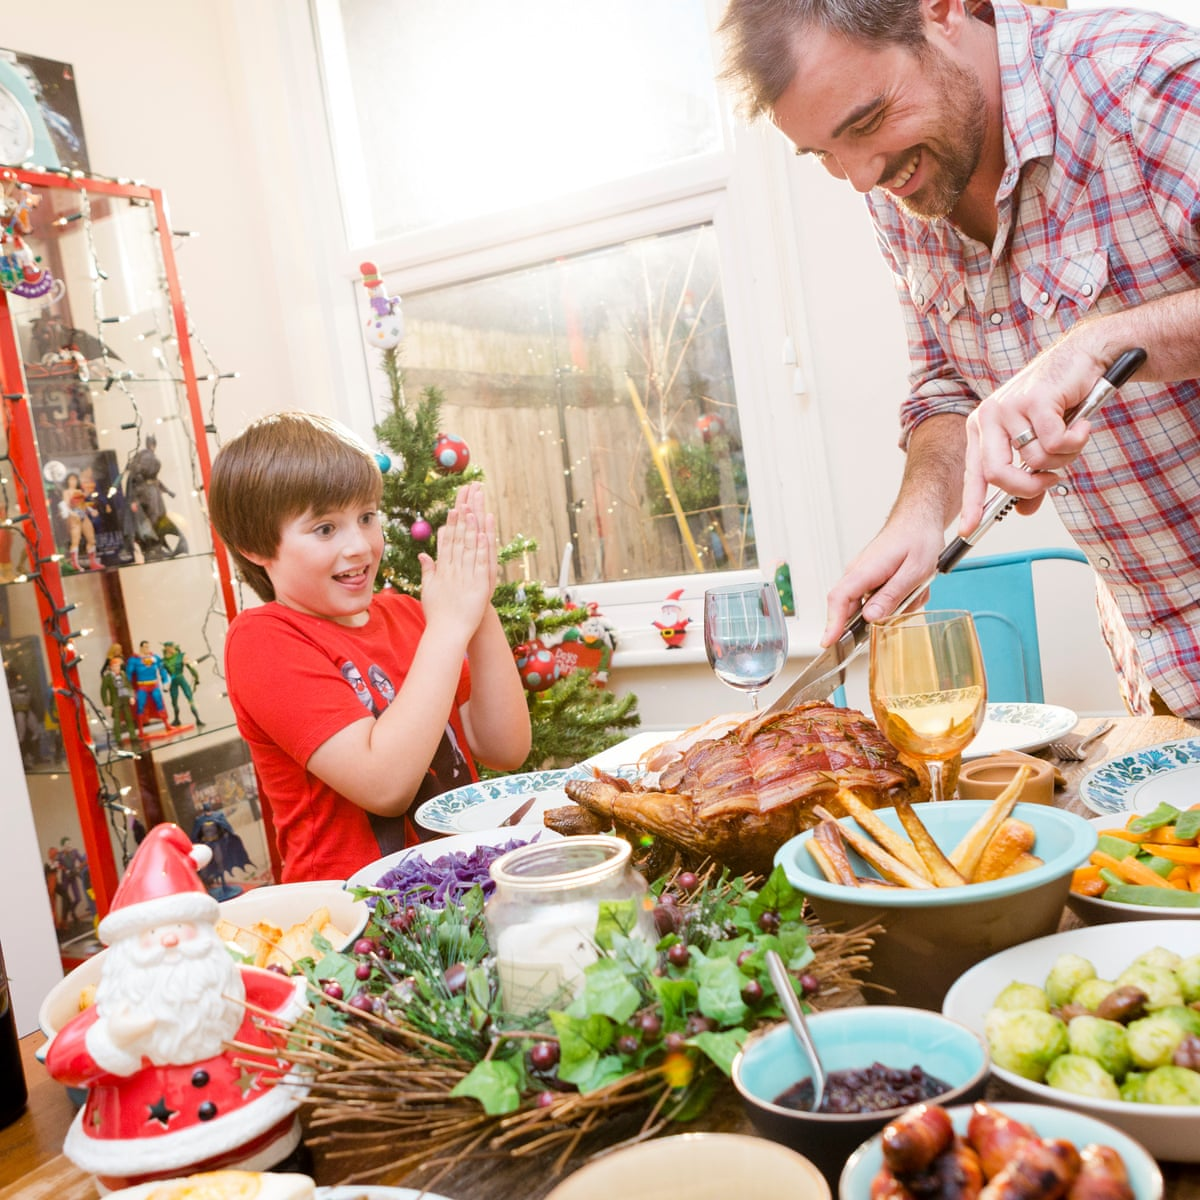 Oregon Christmas Dinner Restaurants Near Me 2021 The New Rules Of Christmas Dinner Don T Ask For Yorkshire Puddings And Always Wear A Party Hat Food The Guardian